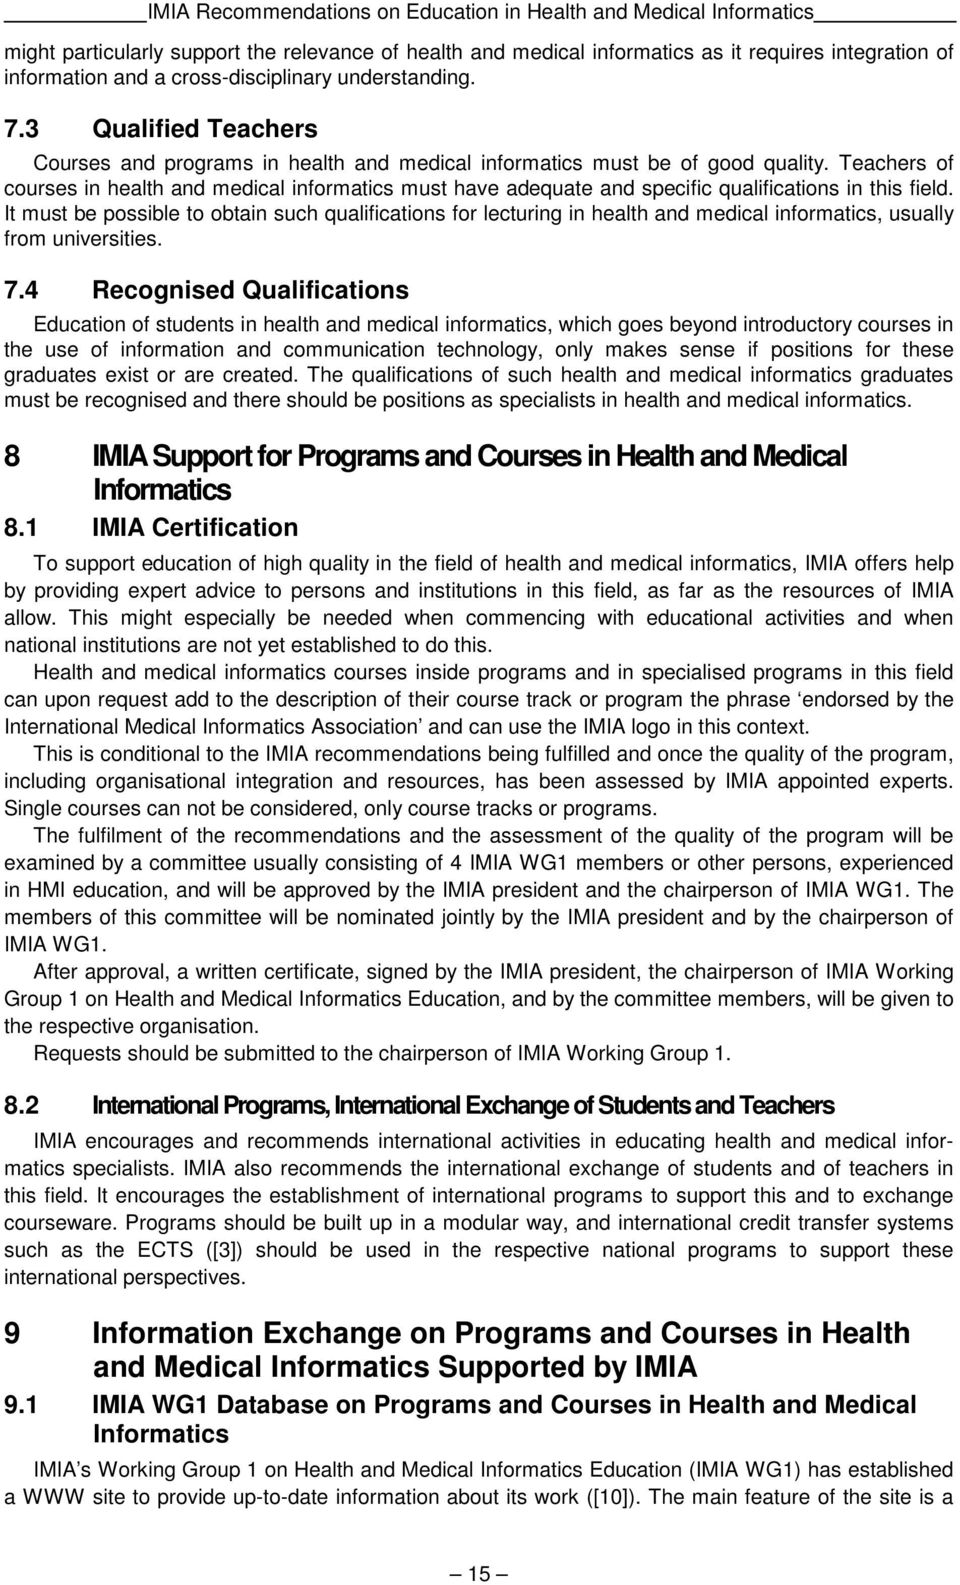 Teachers of courses in health and medical informatics must have adequate and specific qualifications in this field.